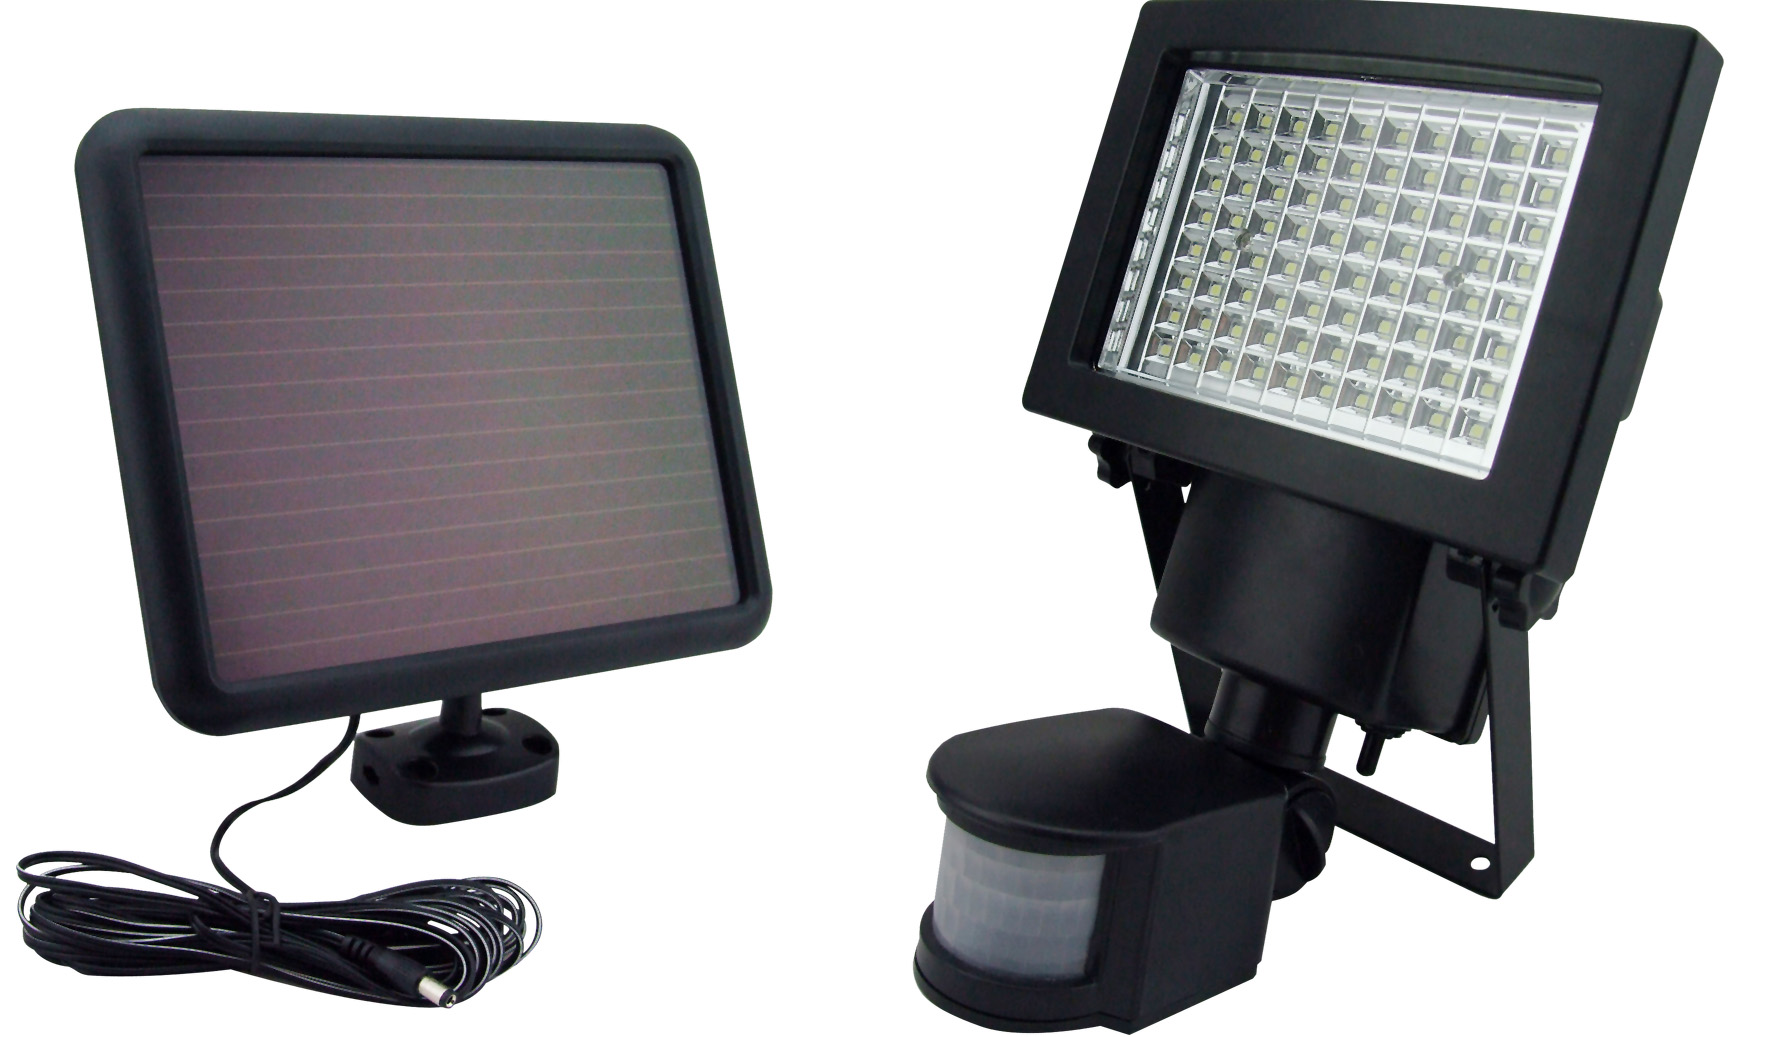 Sontax 80 led solar powered outdoor garden motion light security payment delivery tax information mozeypictures Gallery